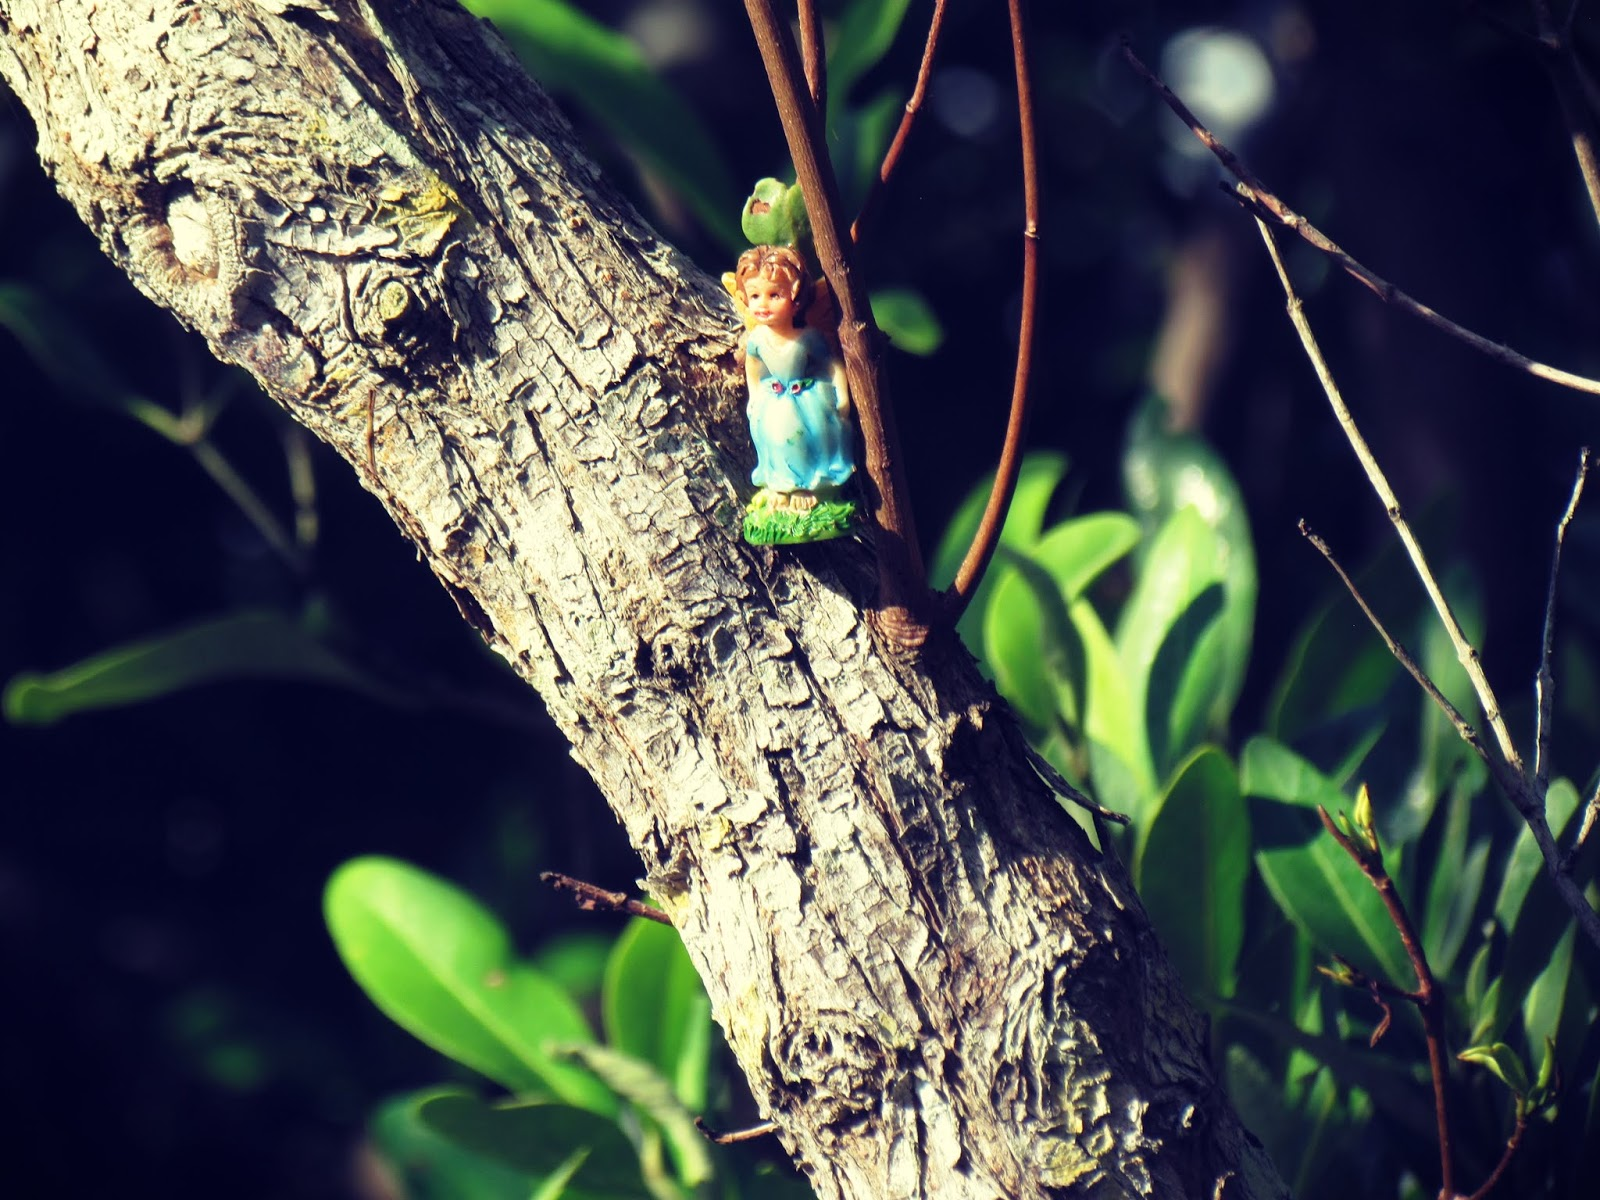 A magical porcelain fairy girl figurine perched in a tall oak tree in the wilds of Florida